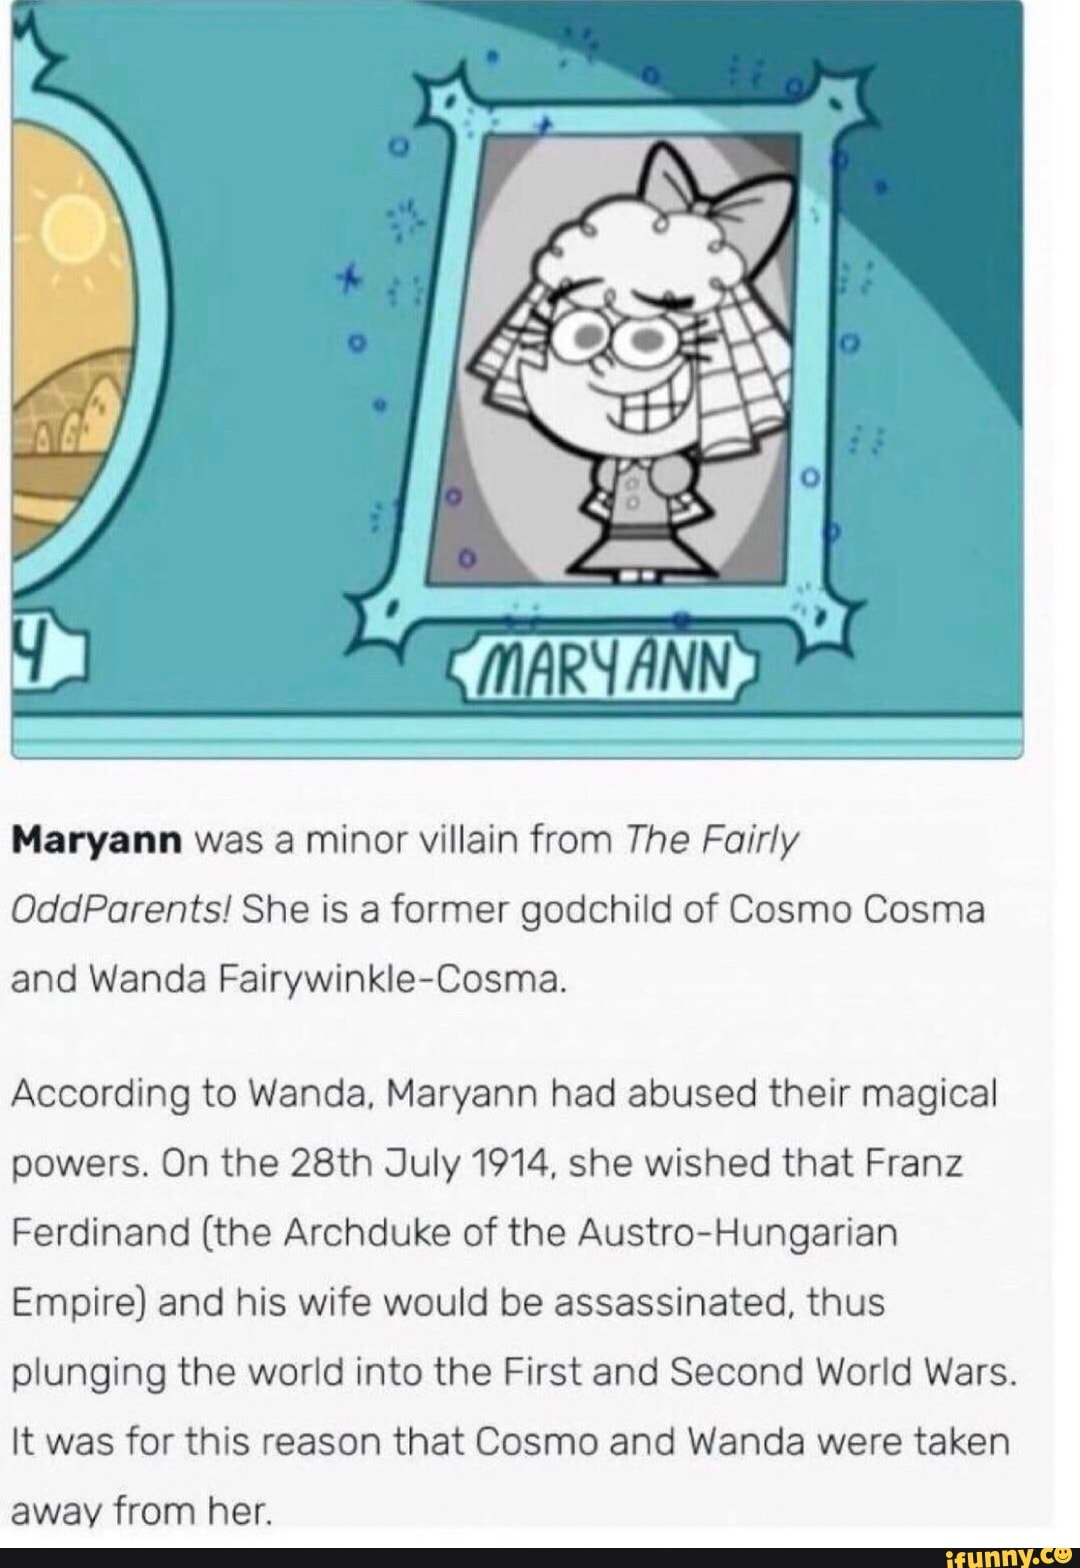 Fairly Odd Parents Pornhub maryann was a minor viliain from the fairly oddparents! she